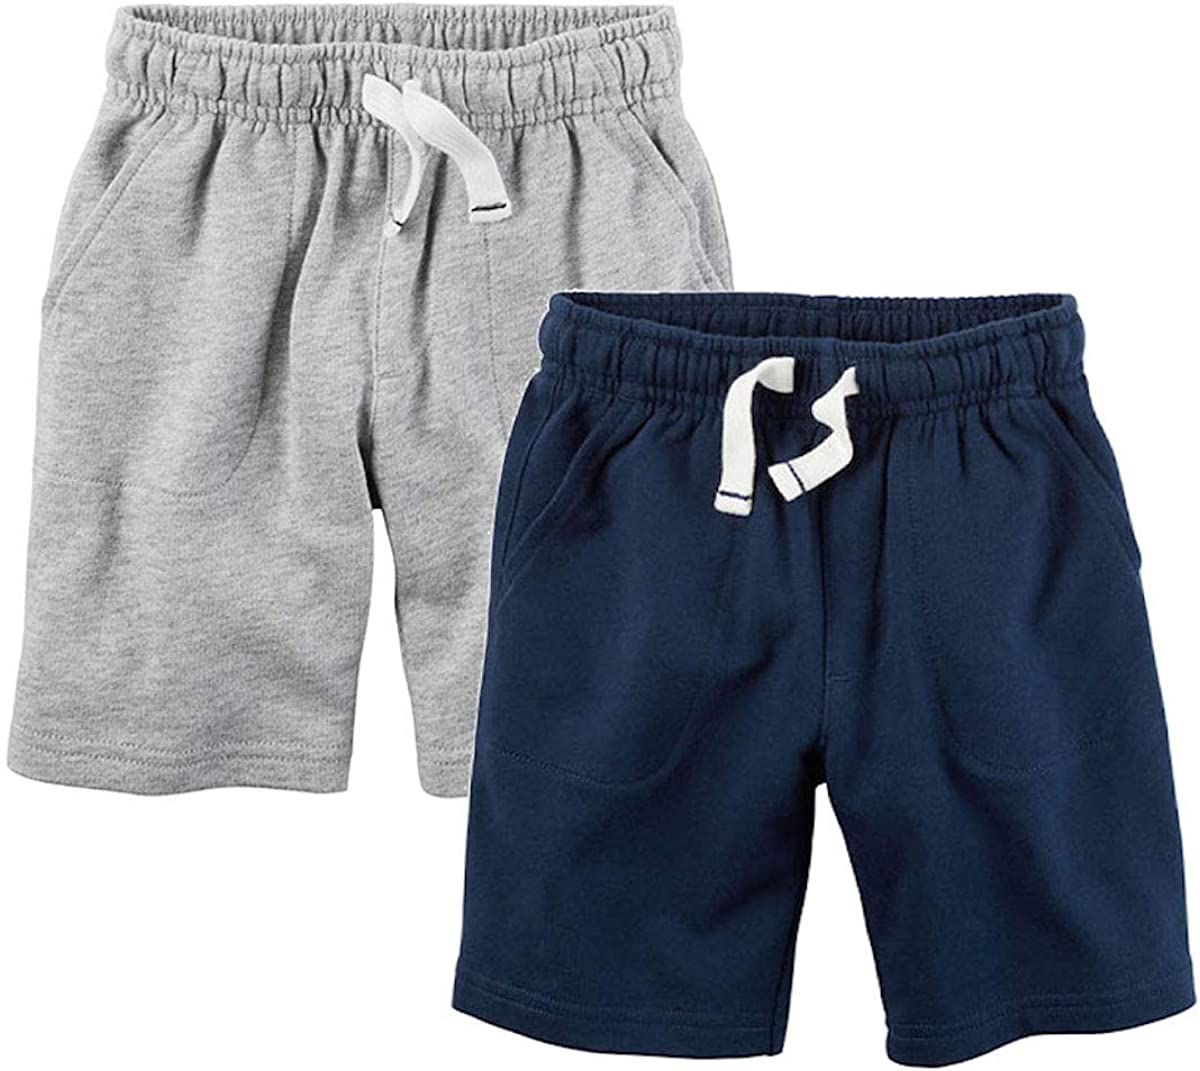 Carter's Max 84% OFF Boys' Limited Special Price 2-Pack Shorts Terry French